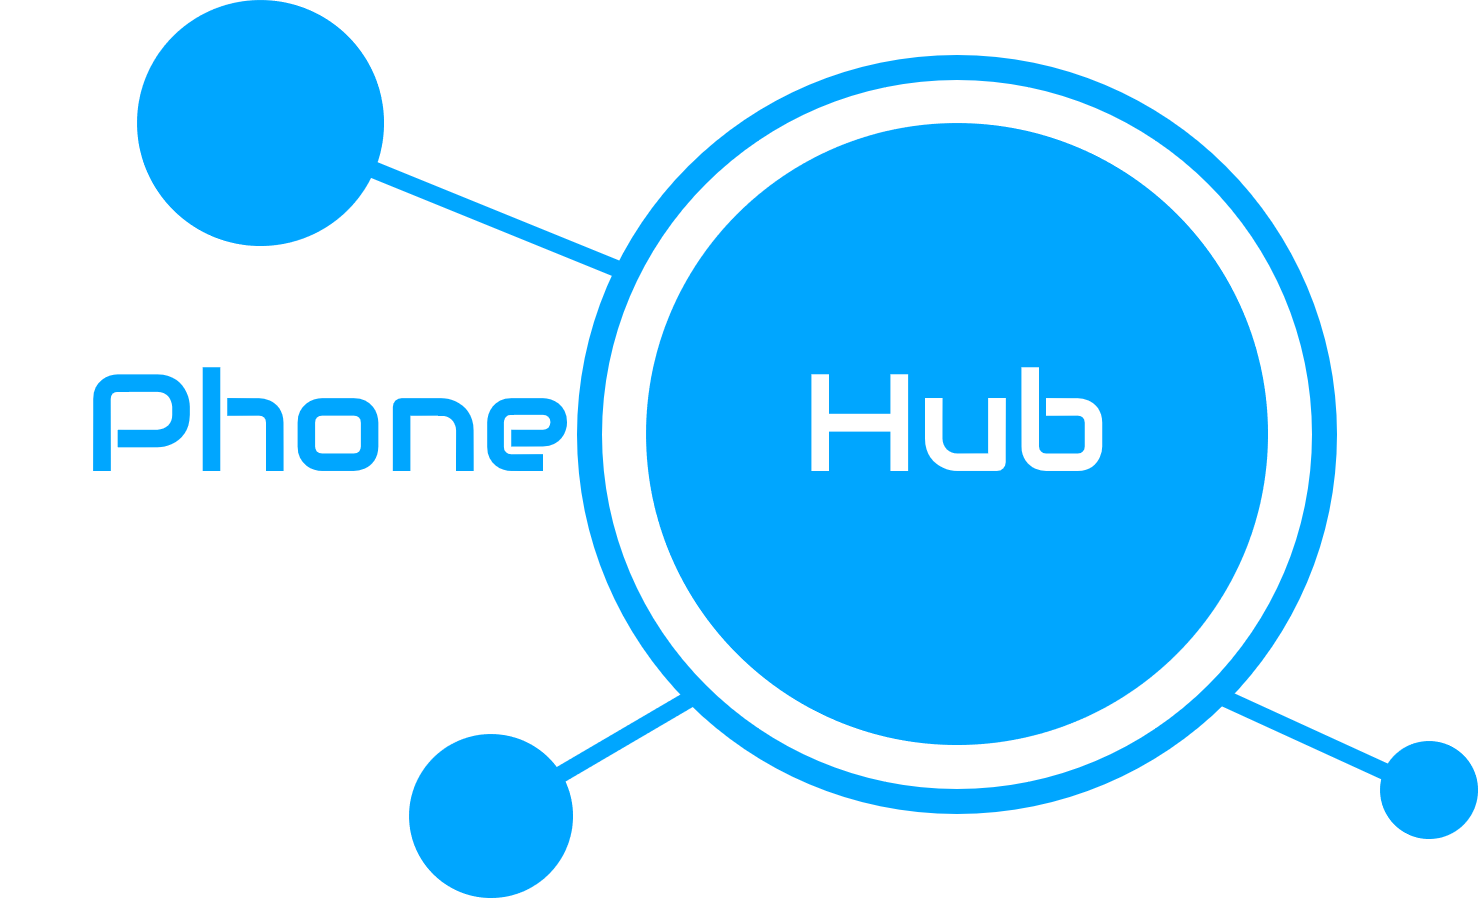 Read Phonehub.co.uk Reviews